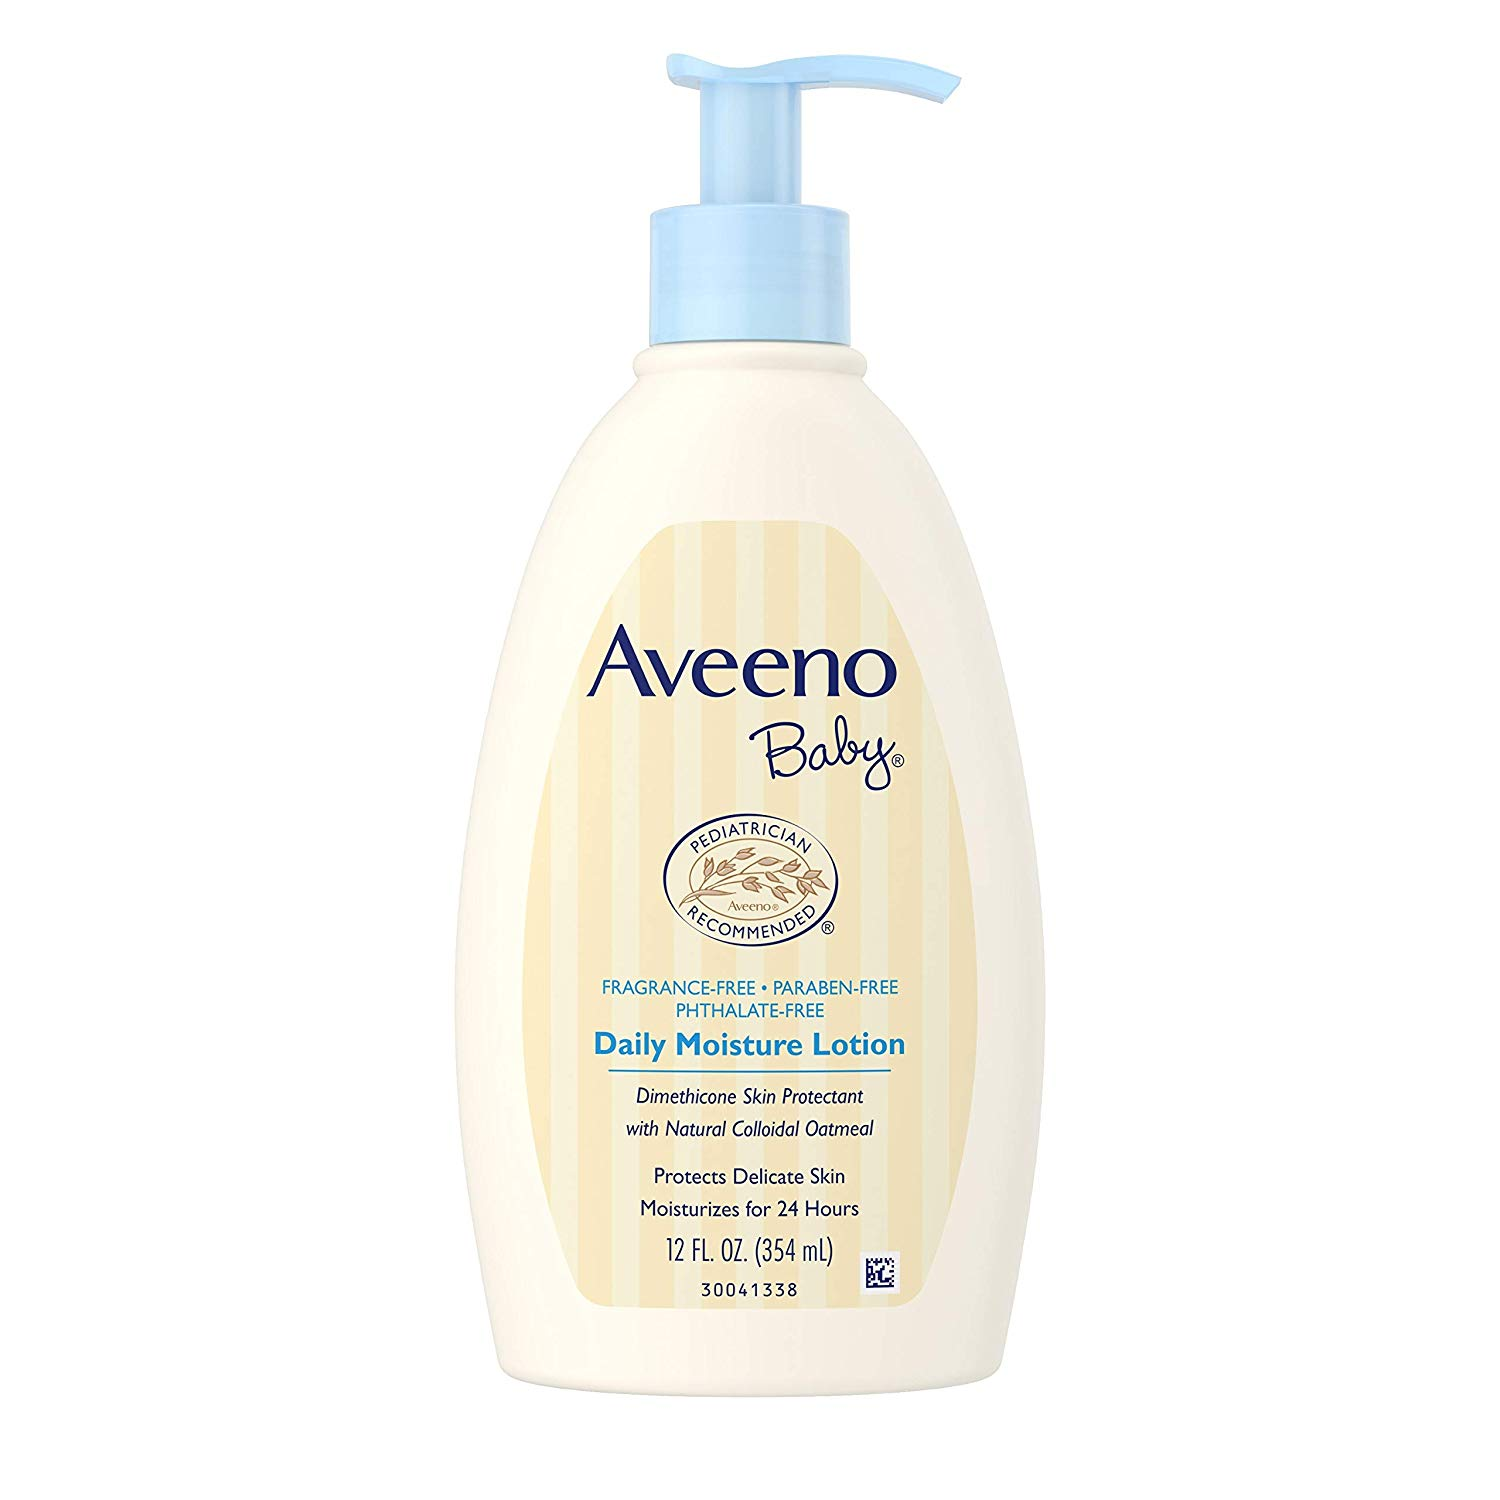 Aveeno Baby Daily Moisture Lotion with Natural Colloidal Oatmeal &  Dimethicone, Fragrance.